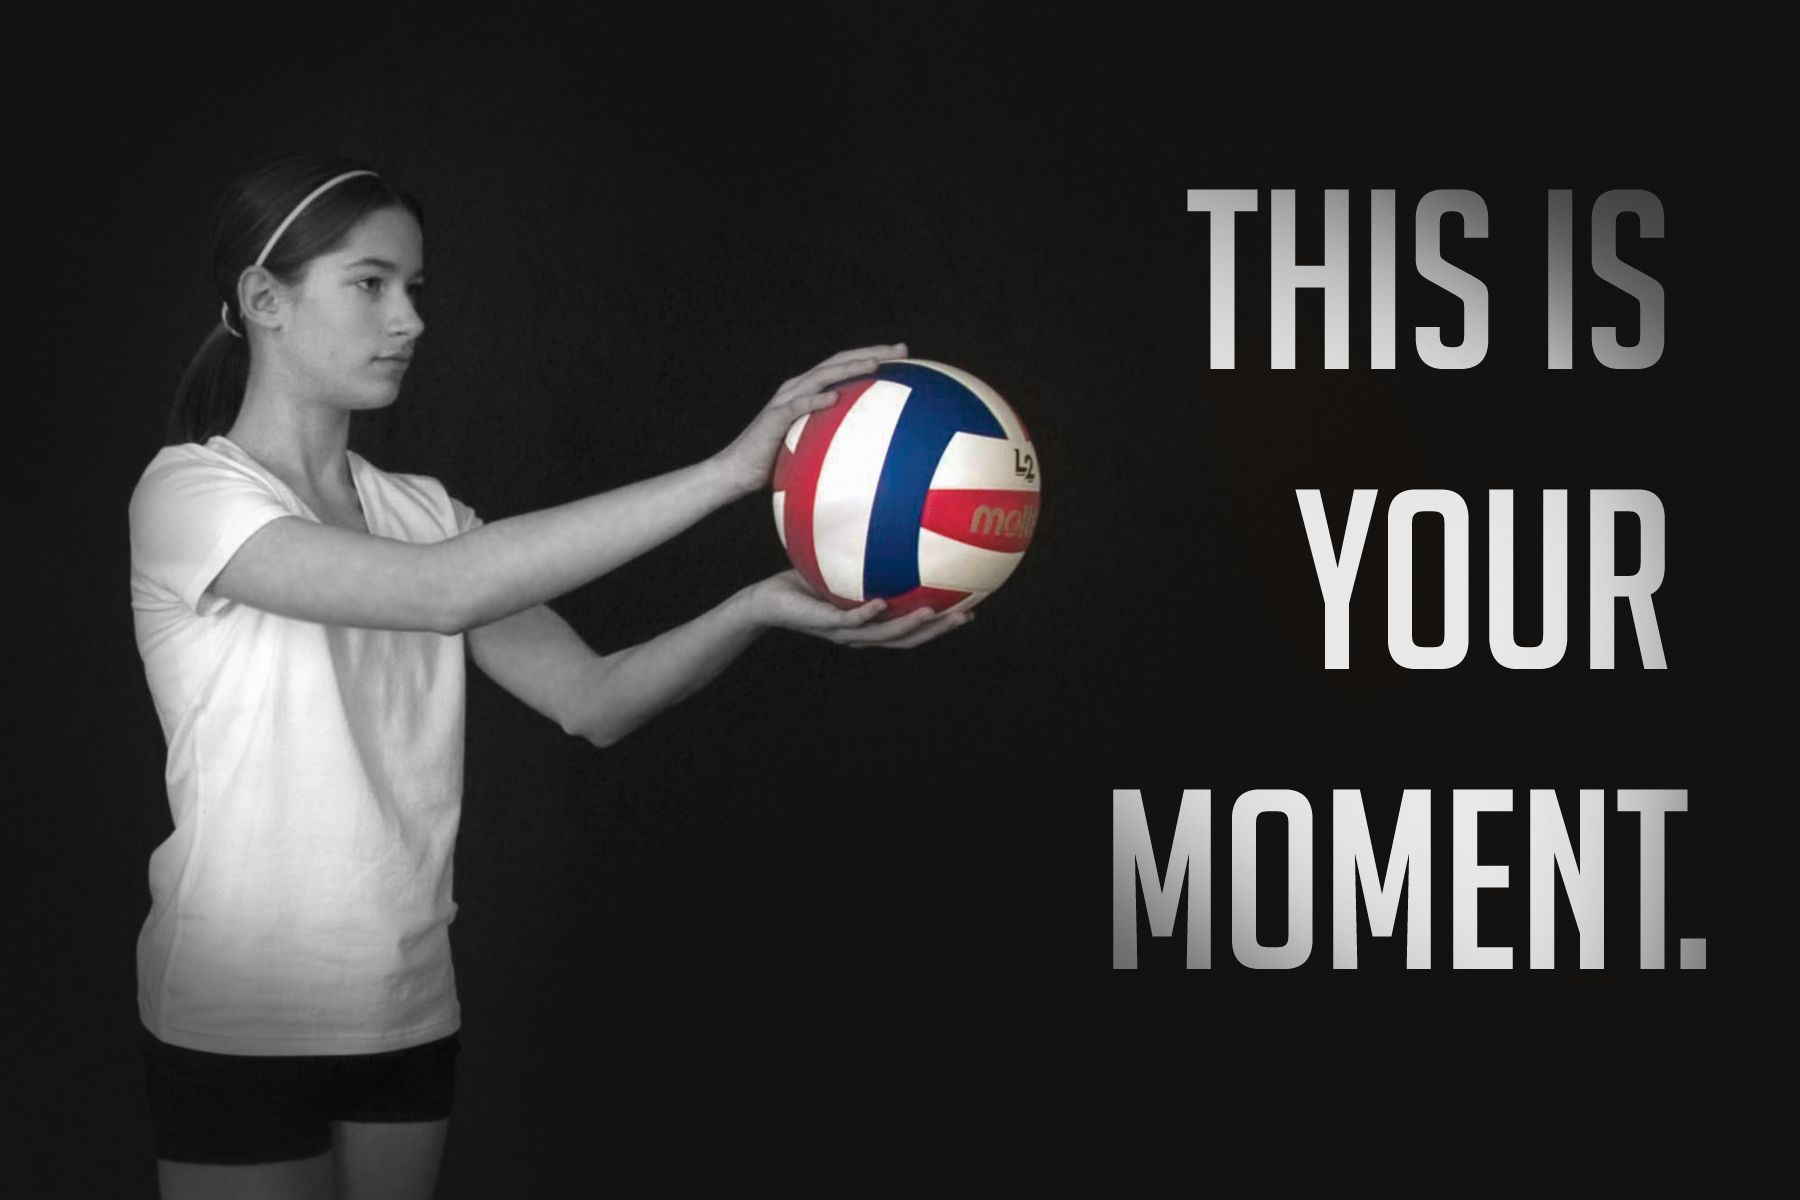 This Is Your Moment 3 Volleyball Coaching Volleyball Volleyball Quotes Volleyball Team